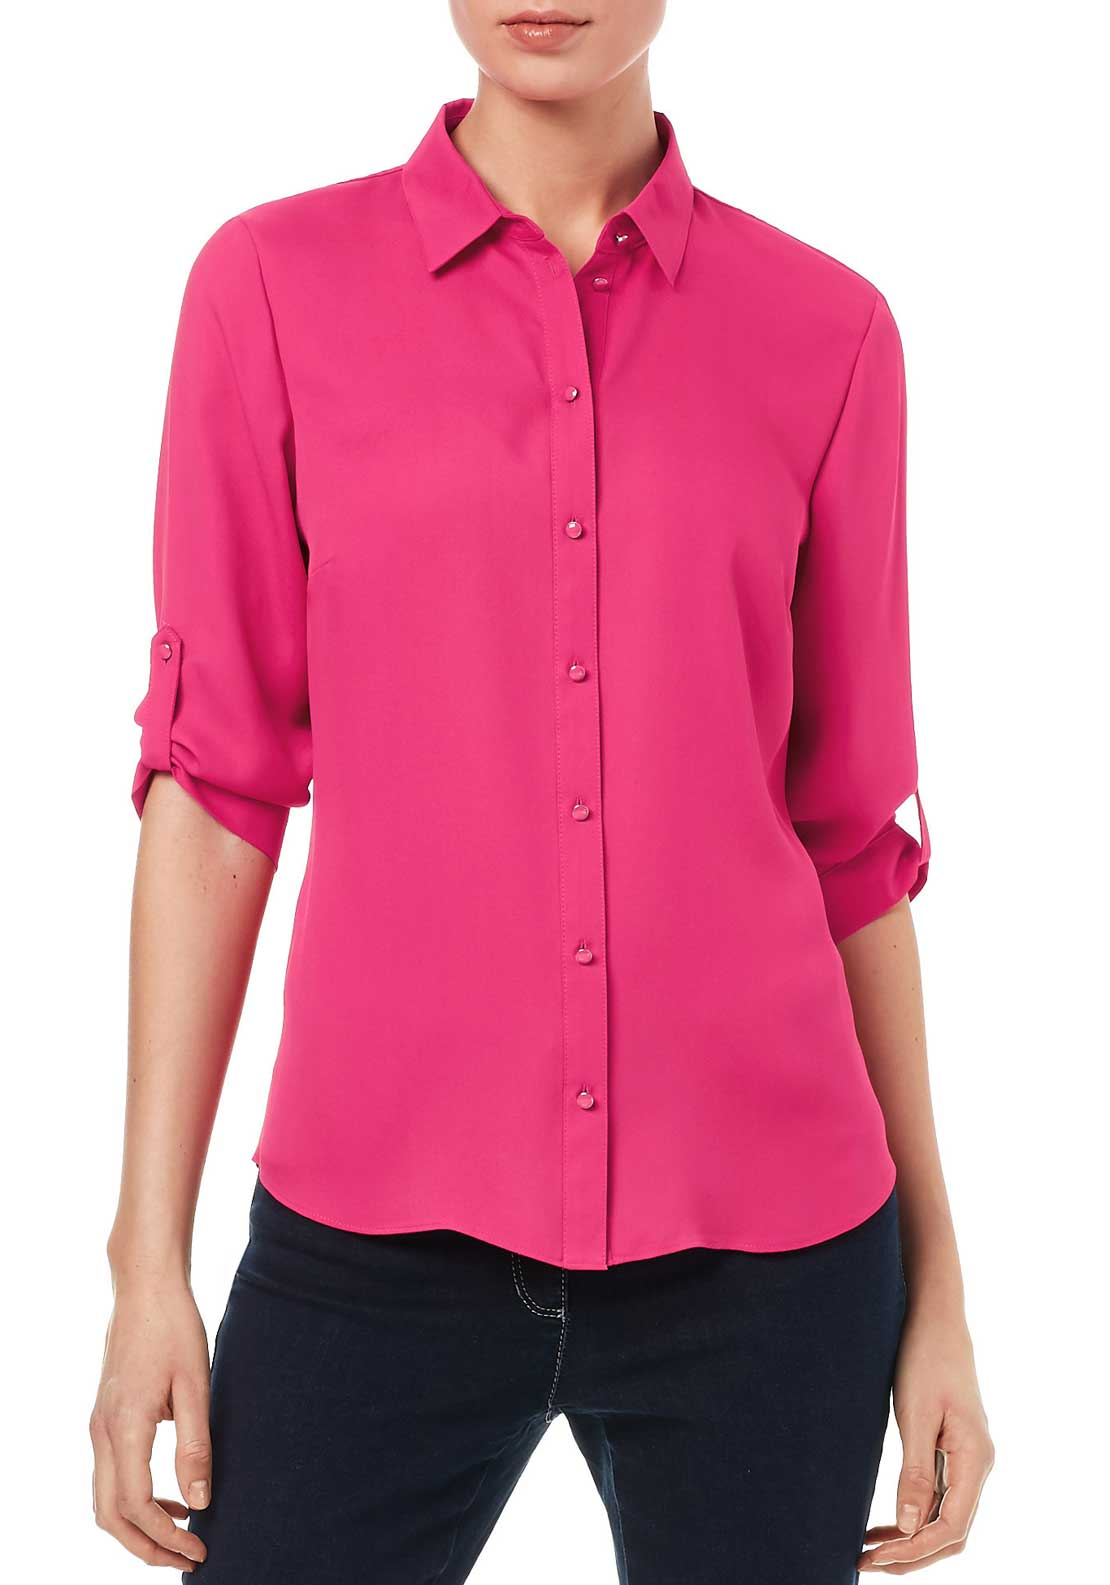 Gerry Weber High Necked Blouse, Pink